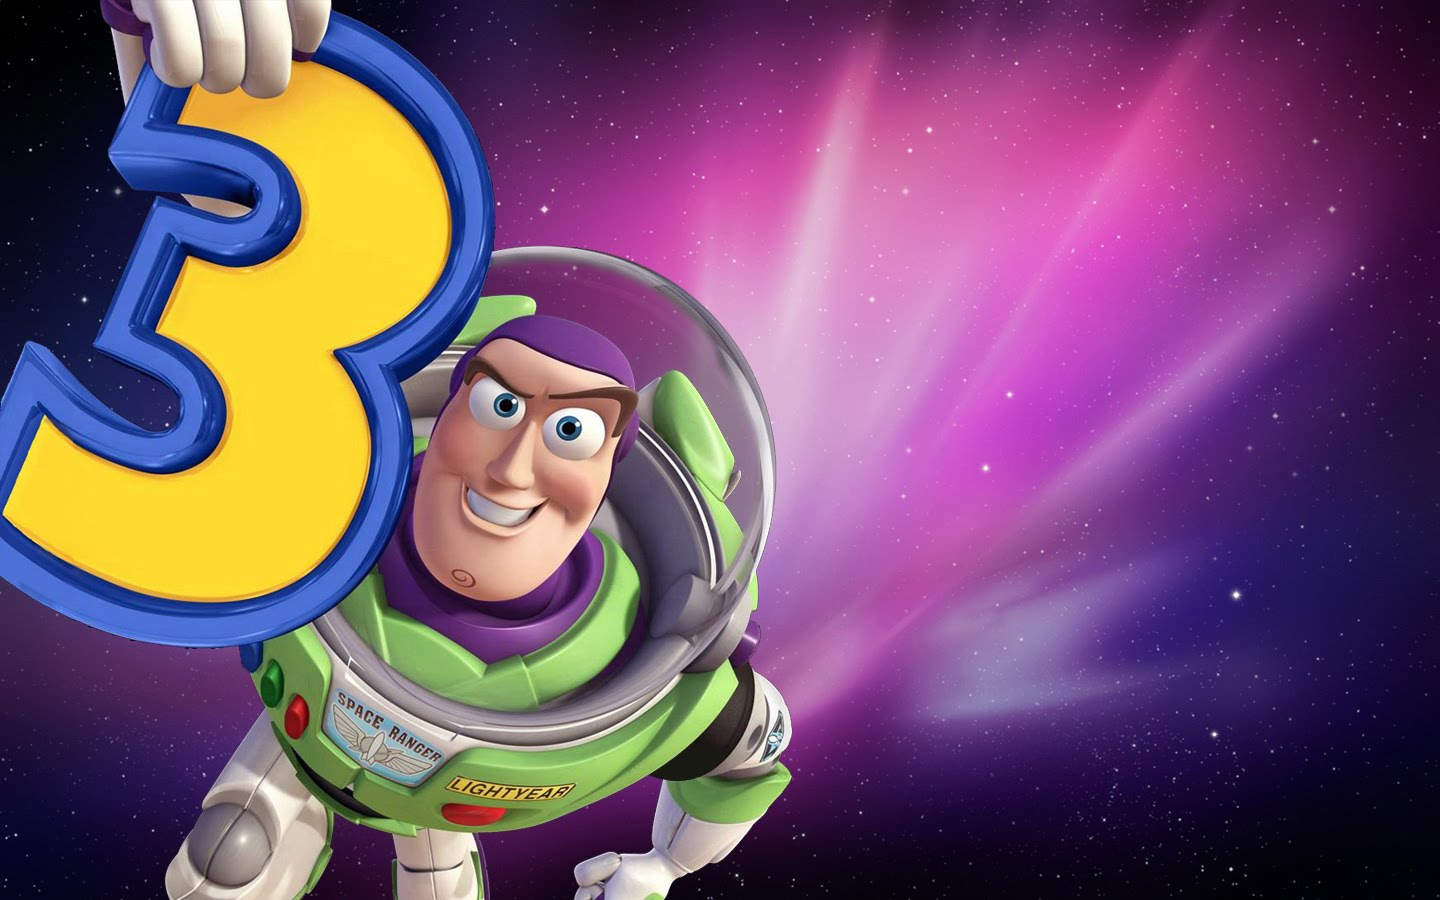 Buzz Lightyear Wallpaper 3